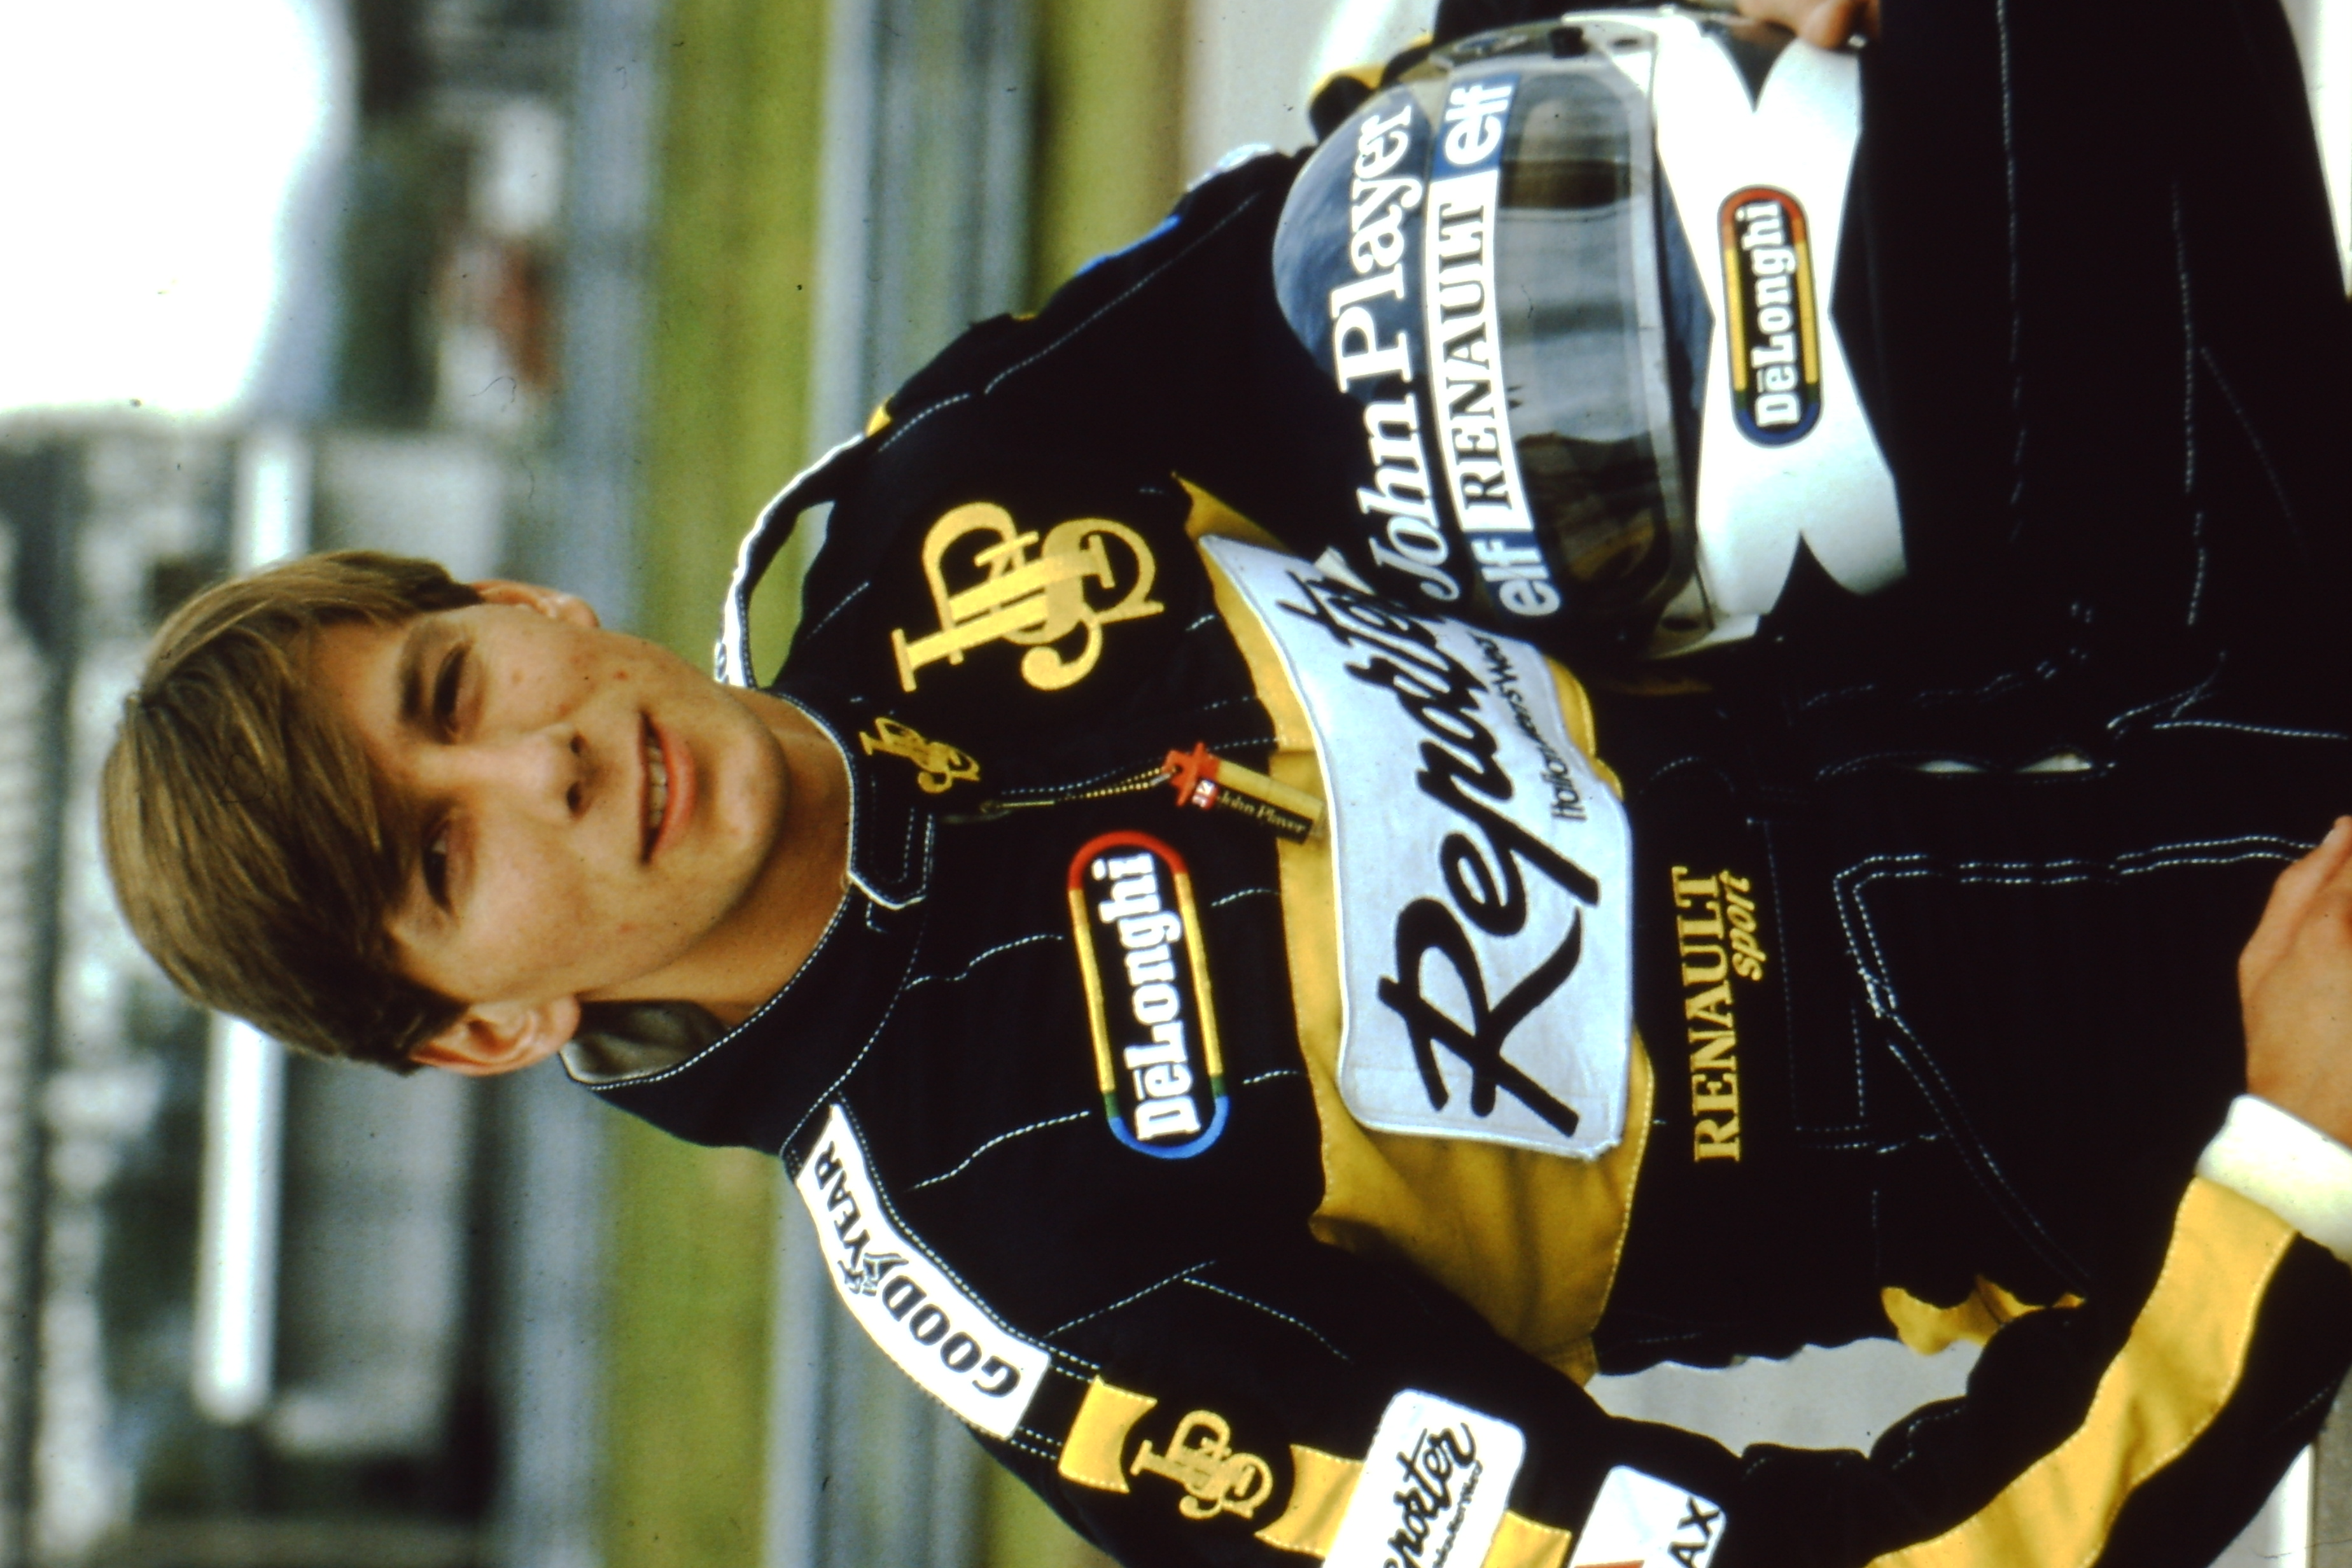 Johnny Dumfries Team Lotus F1 Driver